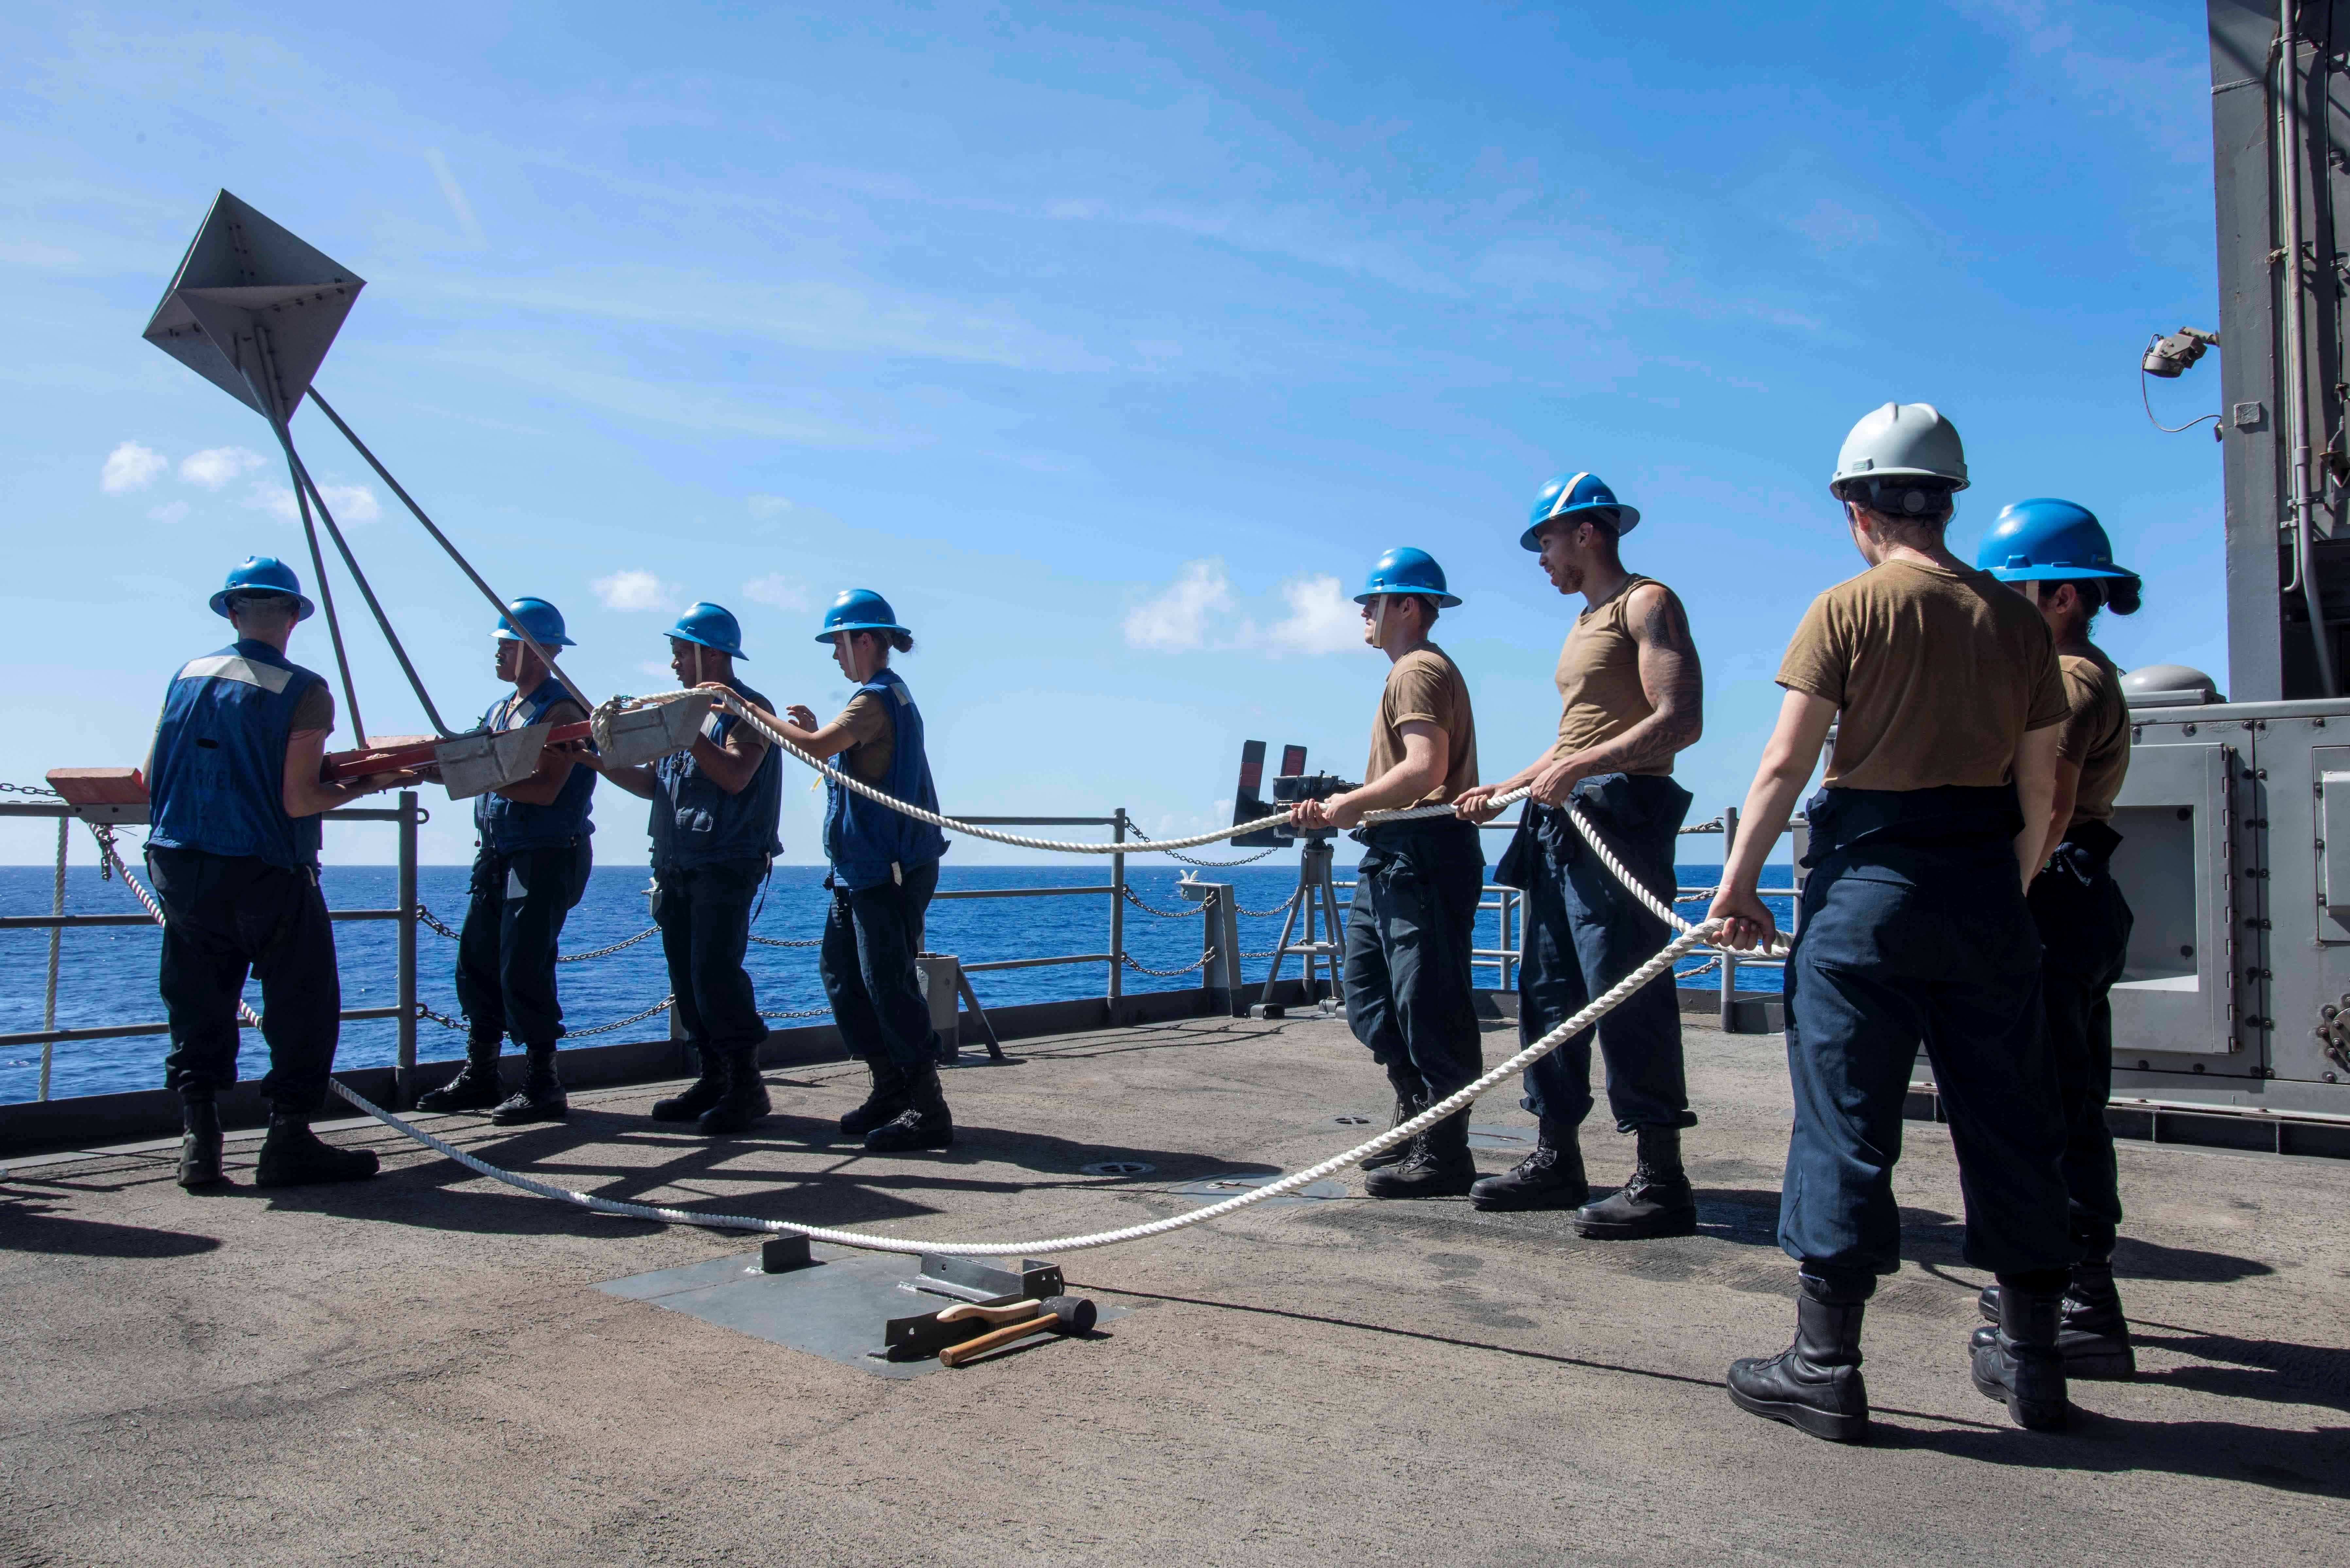 U.S. Navy sailors lower a larne target from the fantail of the aircraft carrier USS Theodore Roosevelt in the Philippine Sea March 21, 2020. (U.S. Navy/Mass Communication Specialist 3rd Class Dartanon D. Delagarza/Handout via REUTERS)